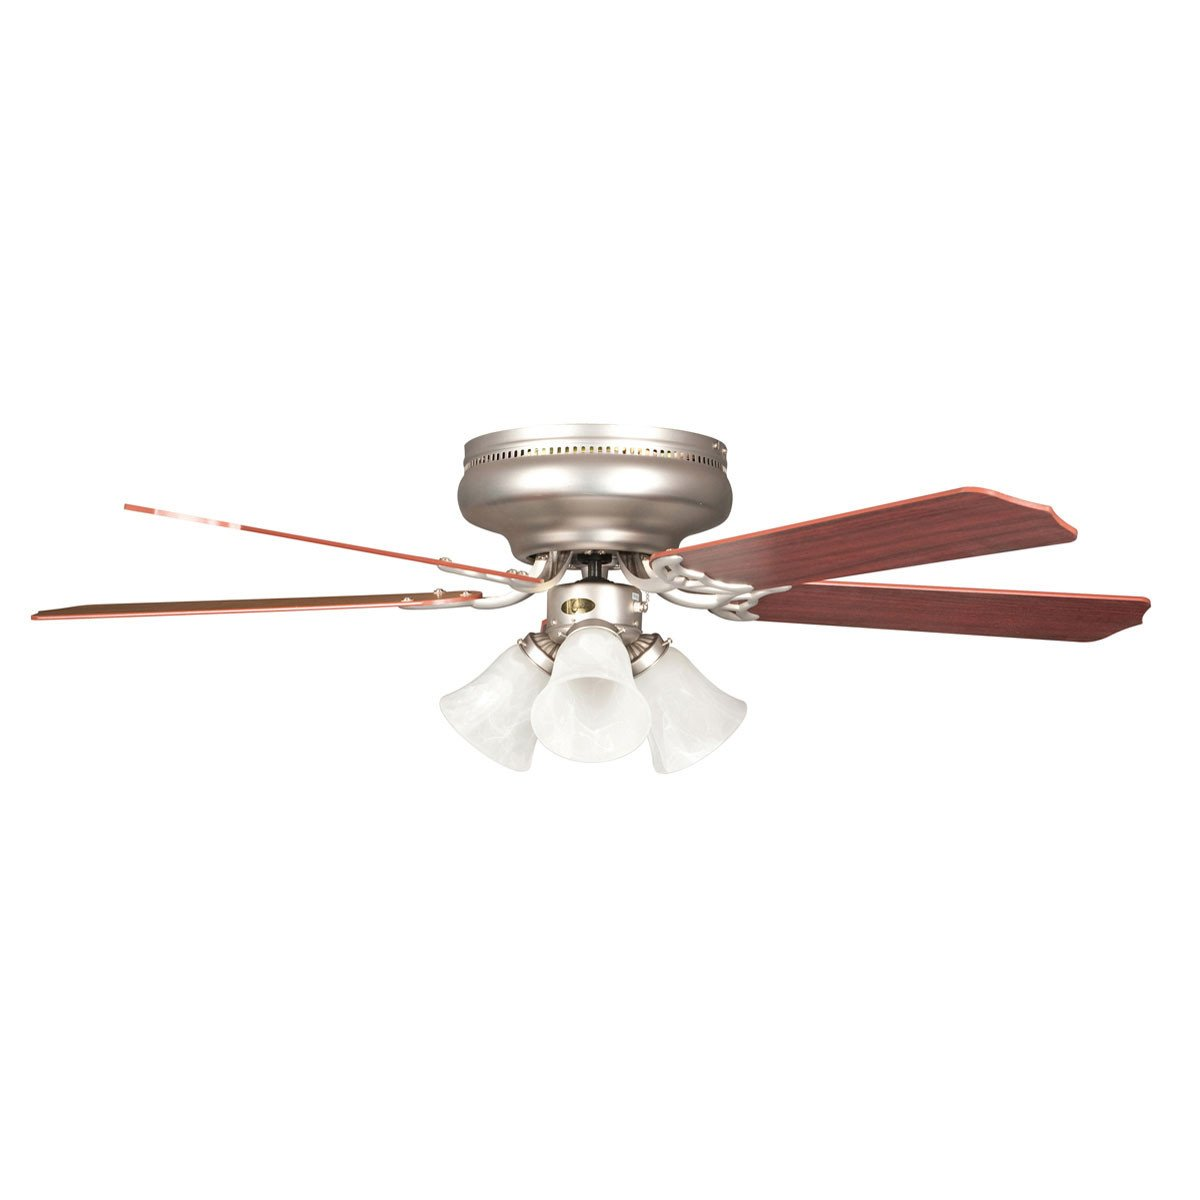 Concord Fans 42 Small Satin Nickel Hugger Ceiling Fan With Light Wiring Diagram Kit